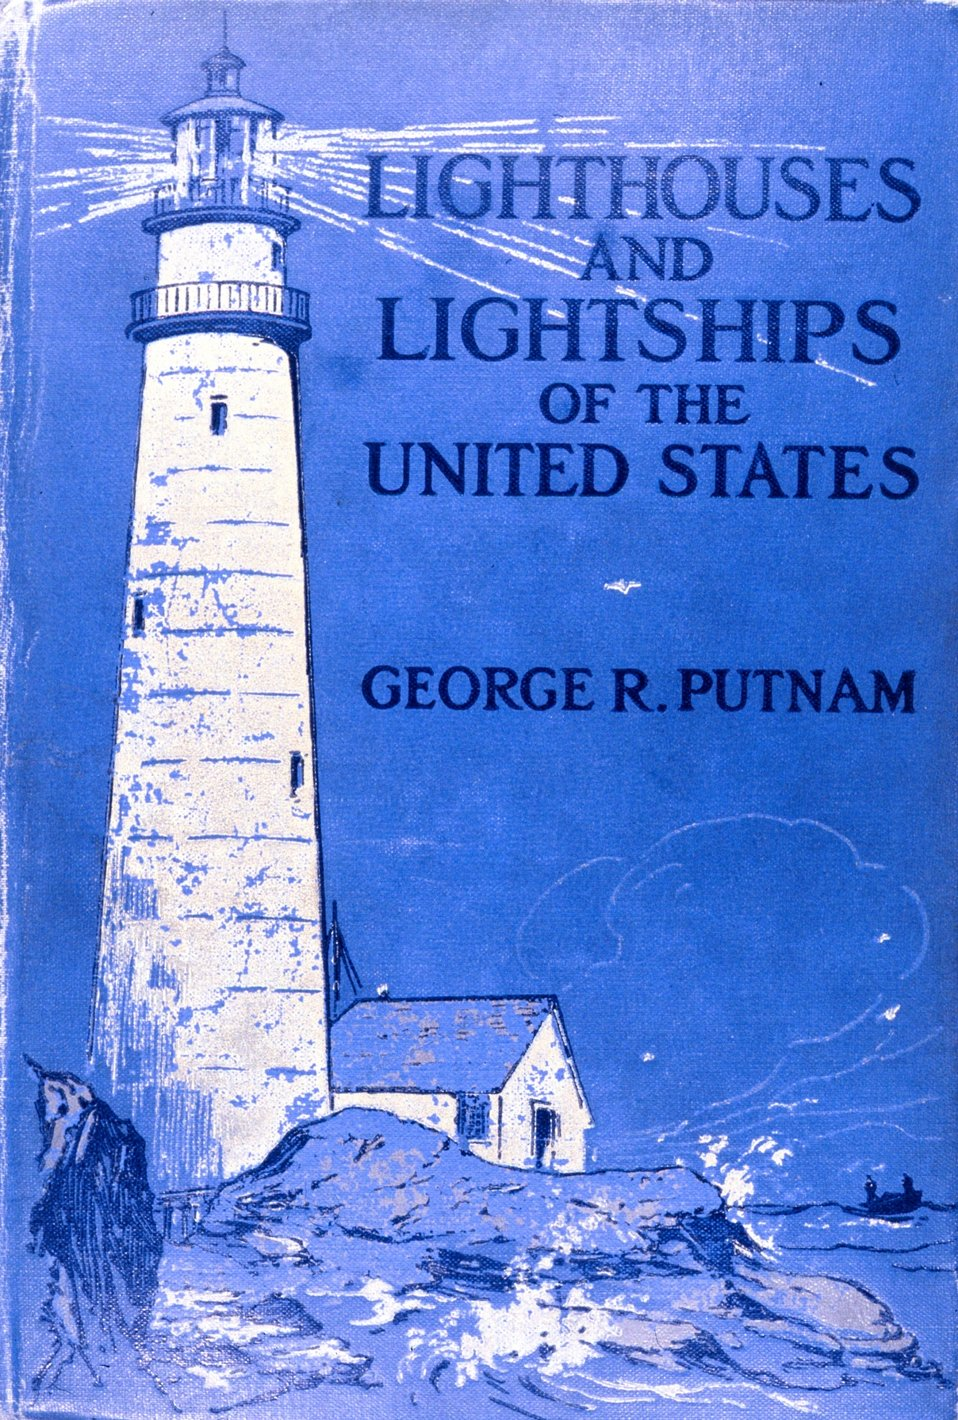 Cover to 'Lighthouses and Lightships of the United States' by George R. Putnam, 1917.  Houghton Mifflin and Company, Boston.